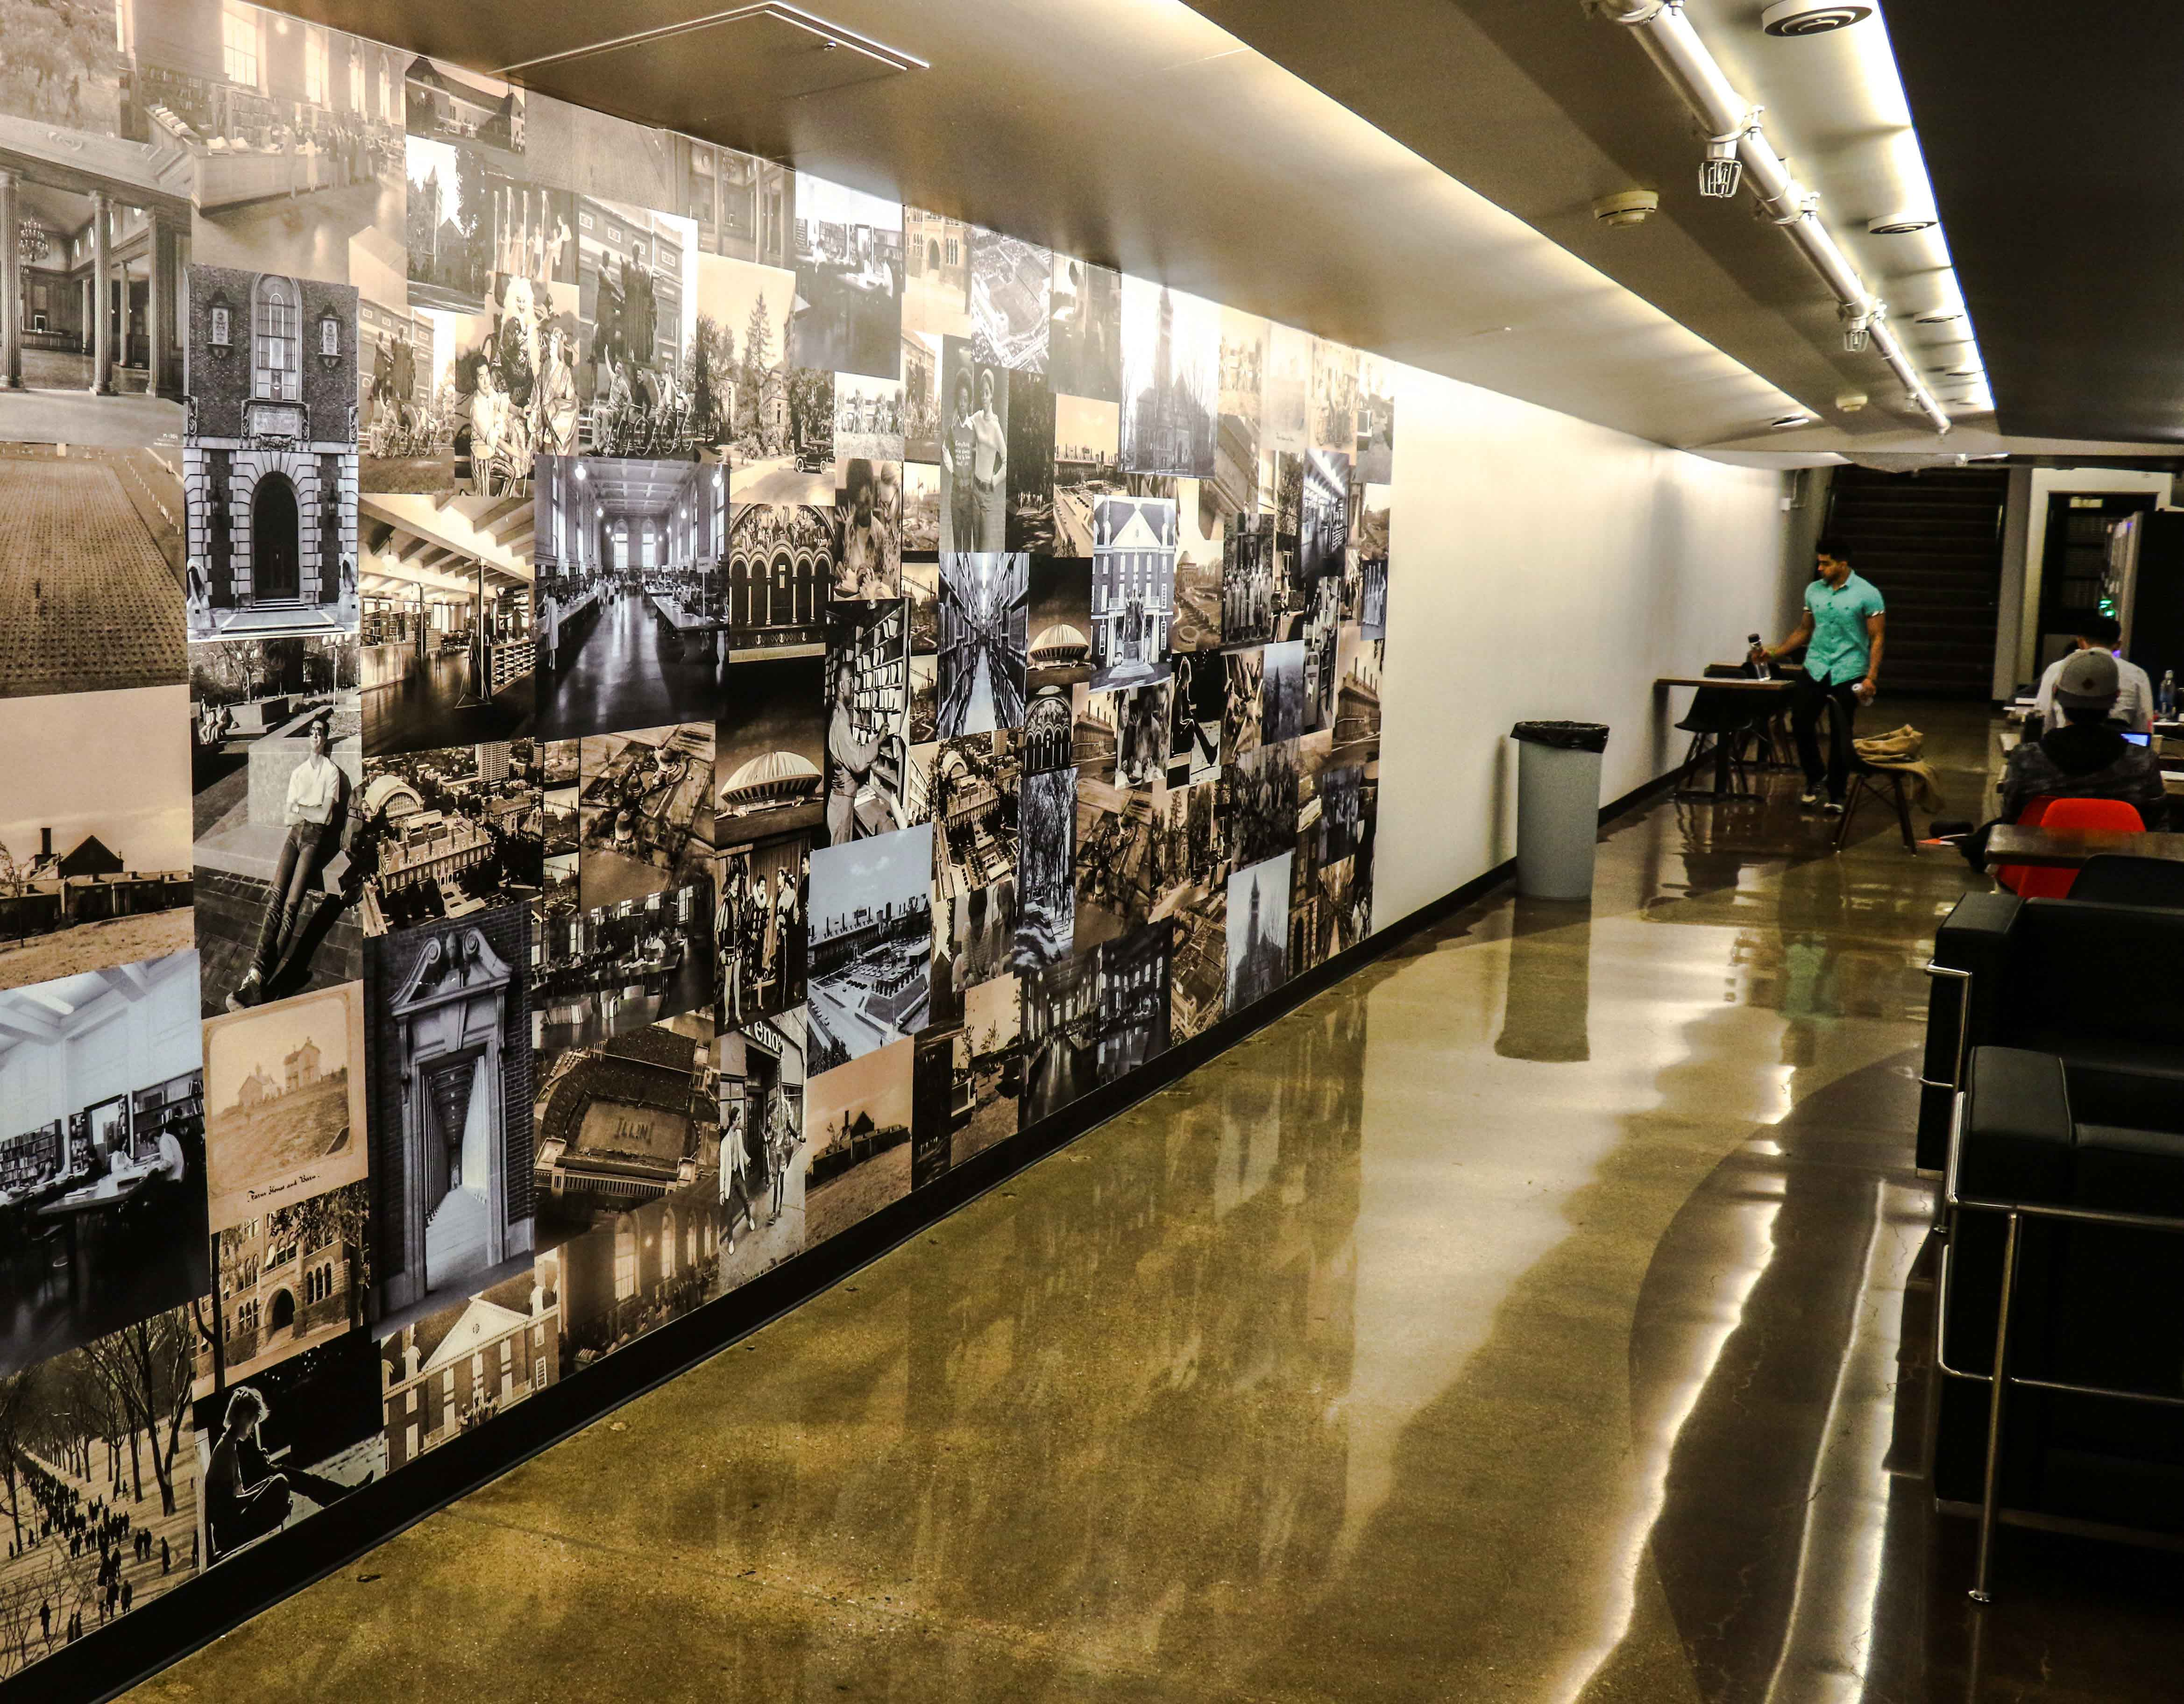 Students study in the tunnel connecting the UGL and the Main Library. The murals were recently added to celebrate the University's history.